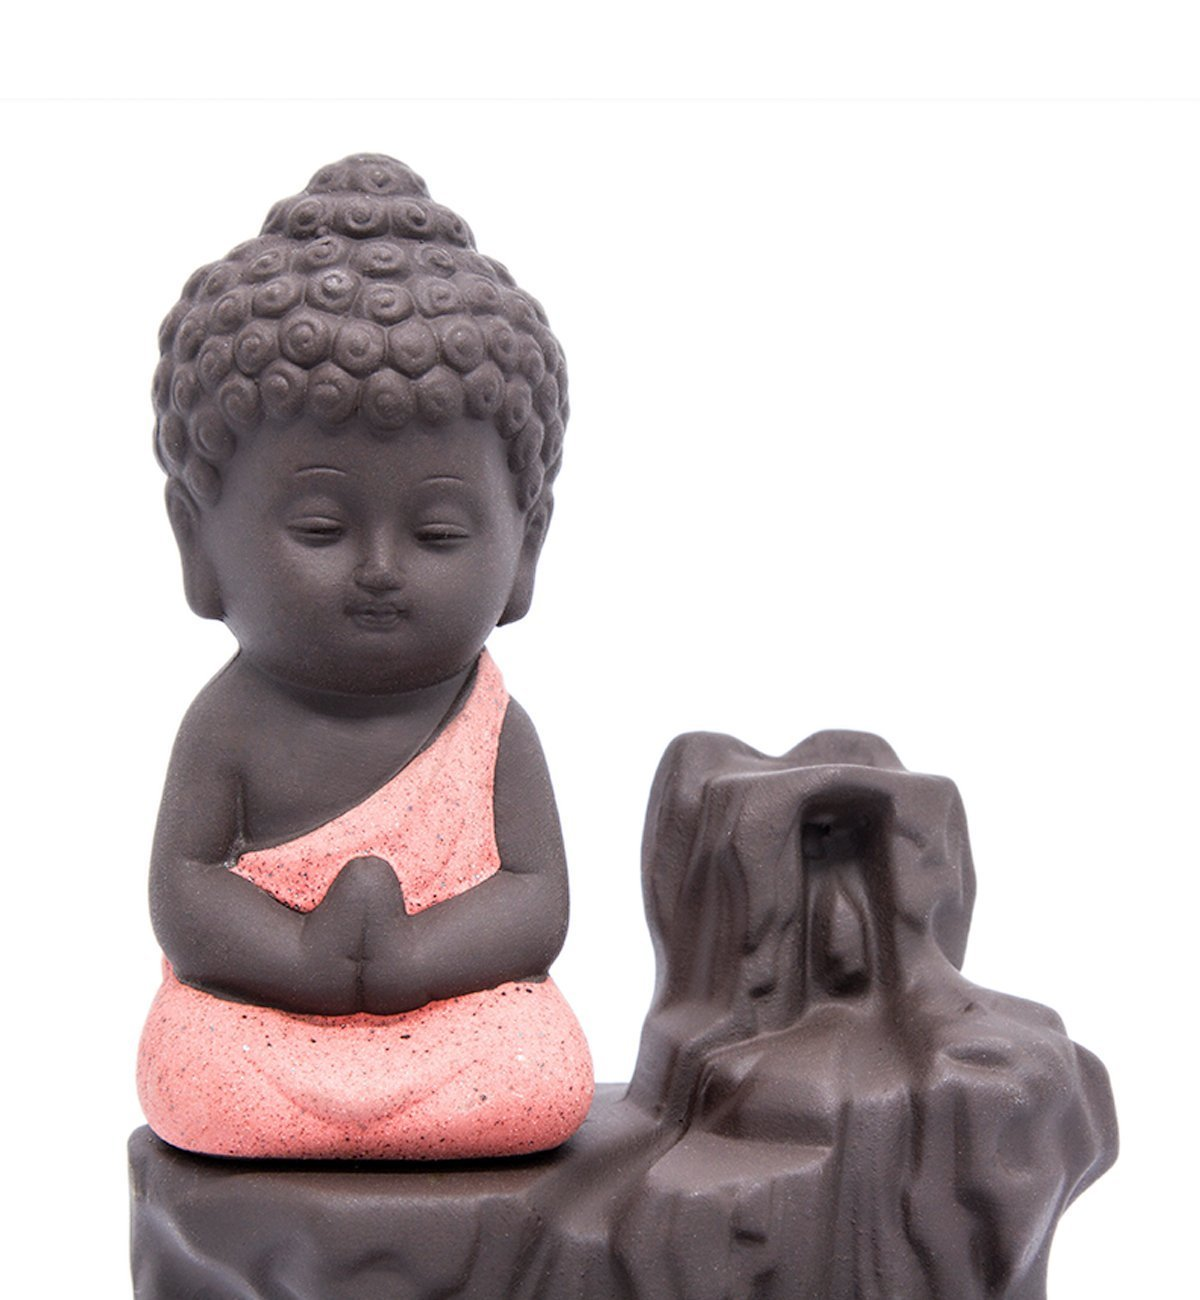 IN-001Red The Little Monk Waterfall Backflow Homemade Buddha Incense Burner Tower Cones Sticks Holder Ash Catcher